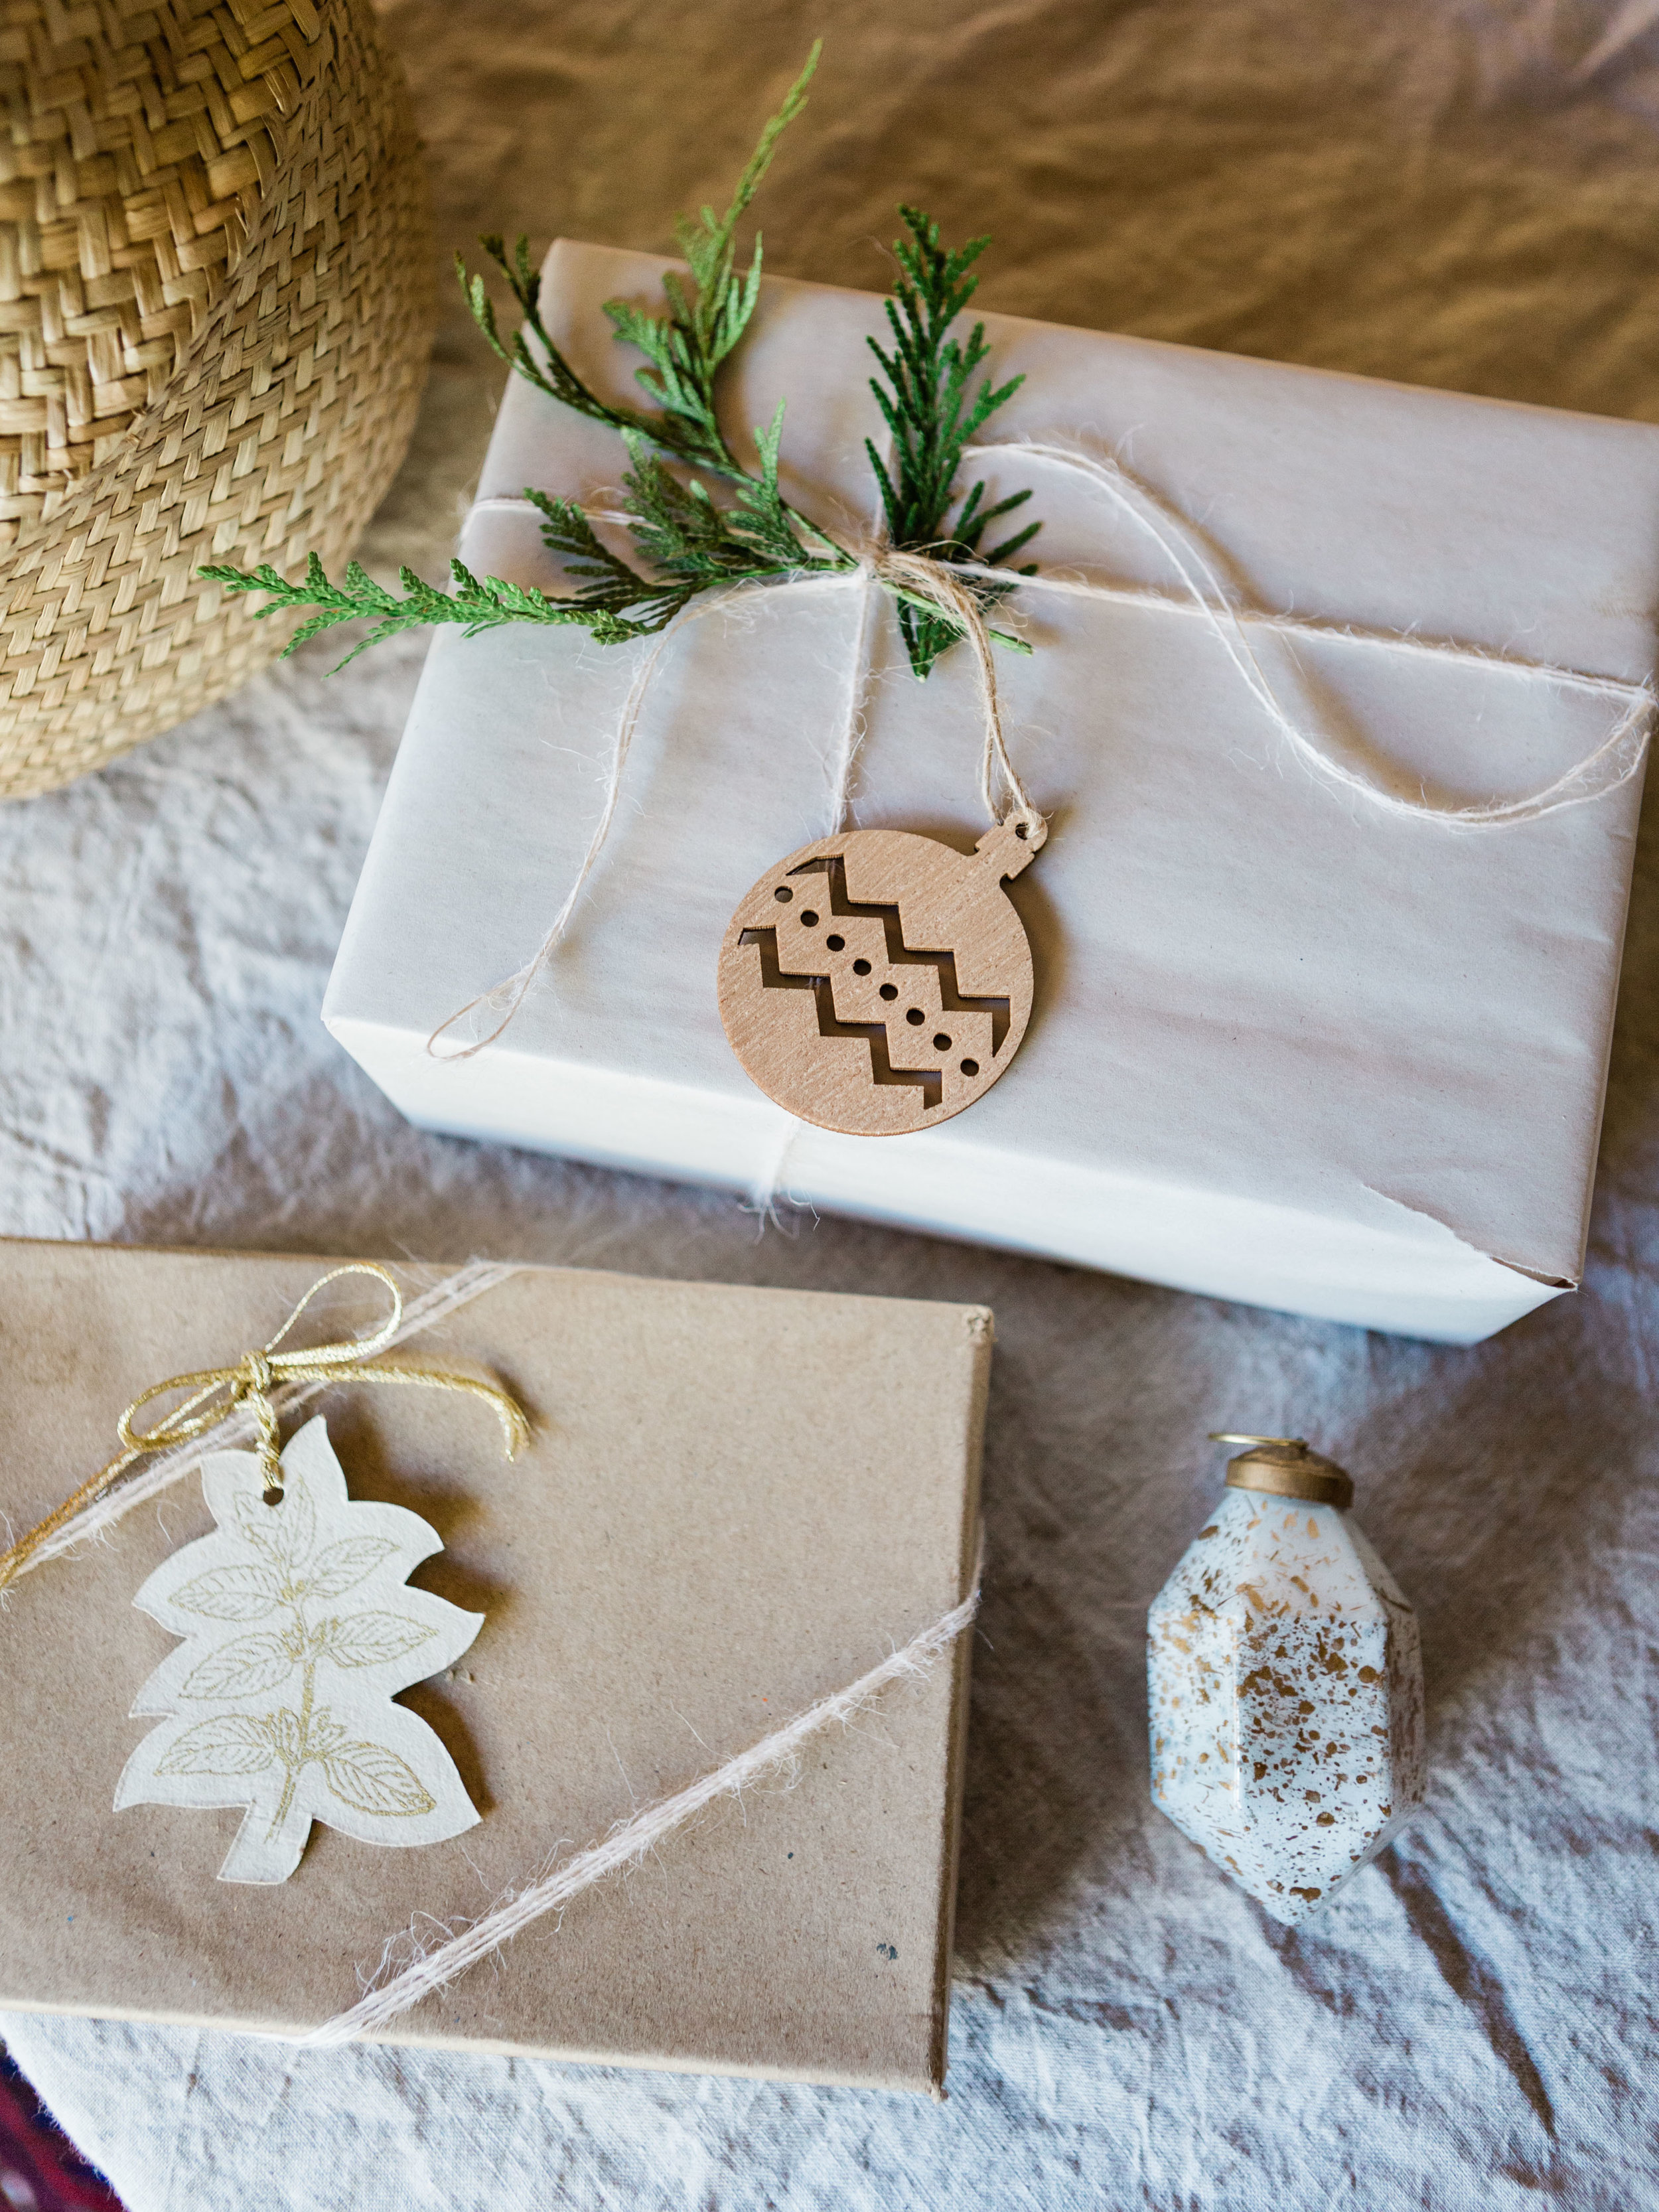 Simple and minimal gift wrap and tag ideas from Foraged Home